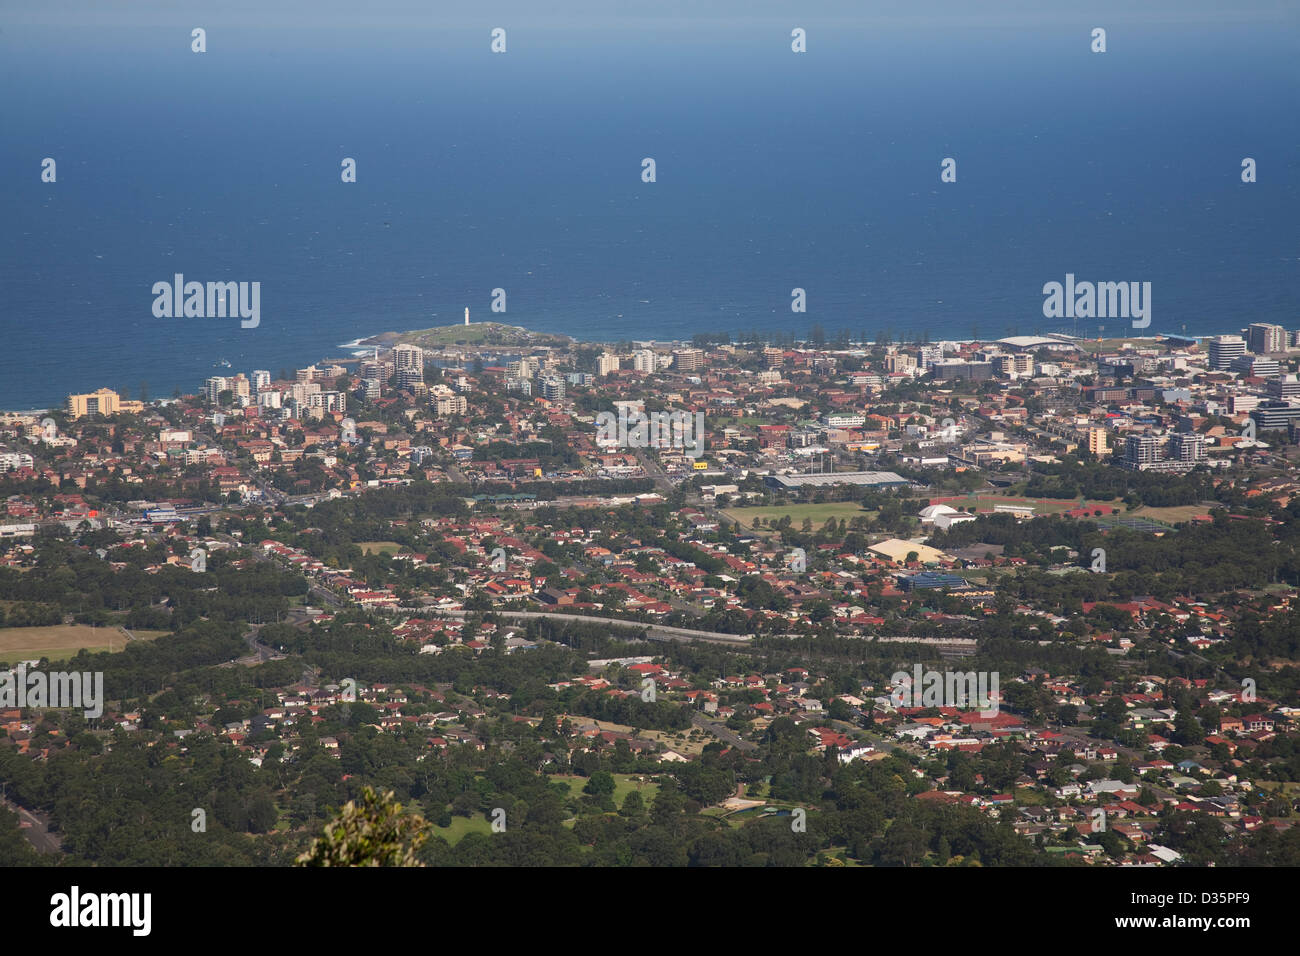 The view from Mount Keira Lookout over the city of Wollongong, New South Wales, Australia. - Stock Image